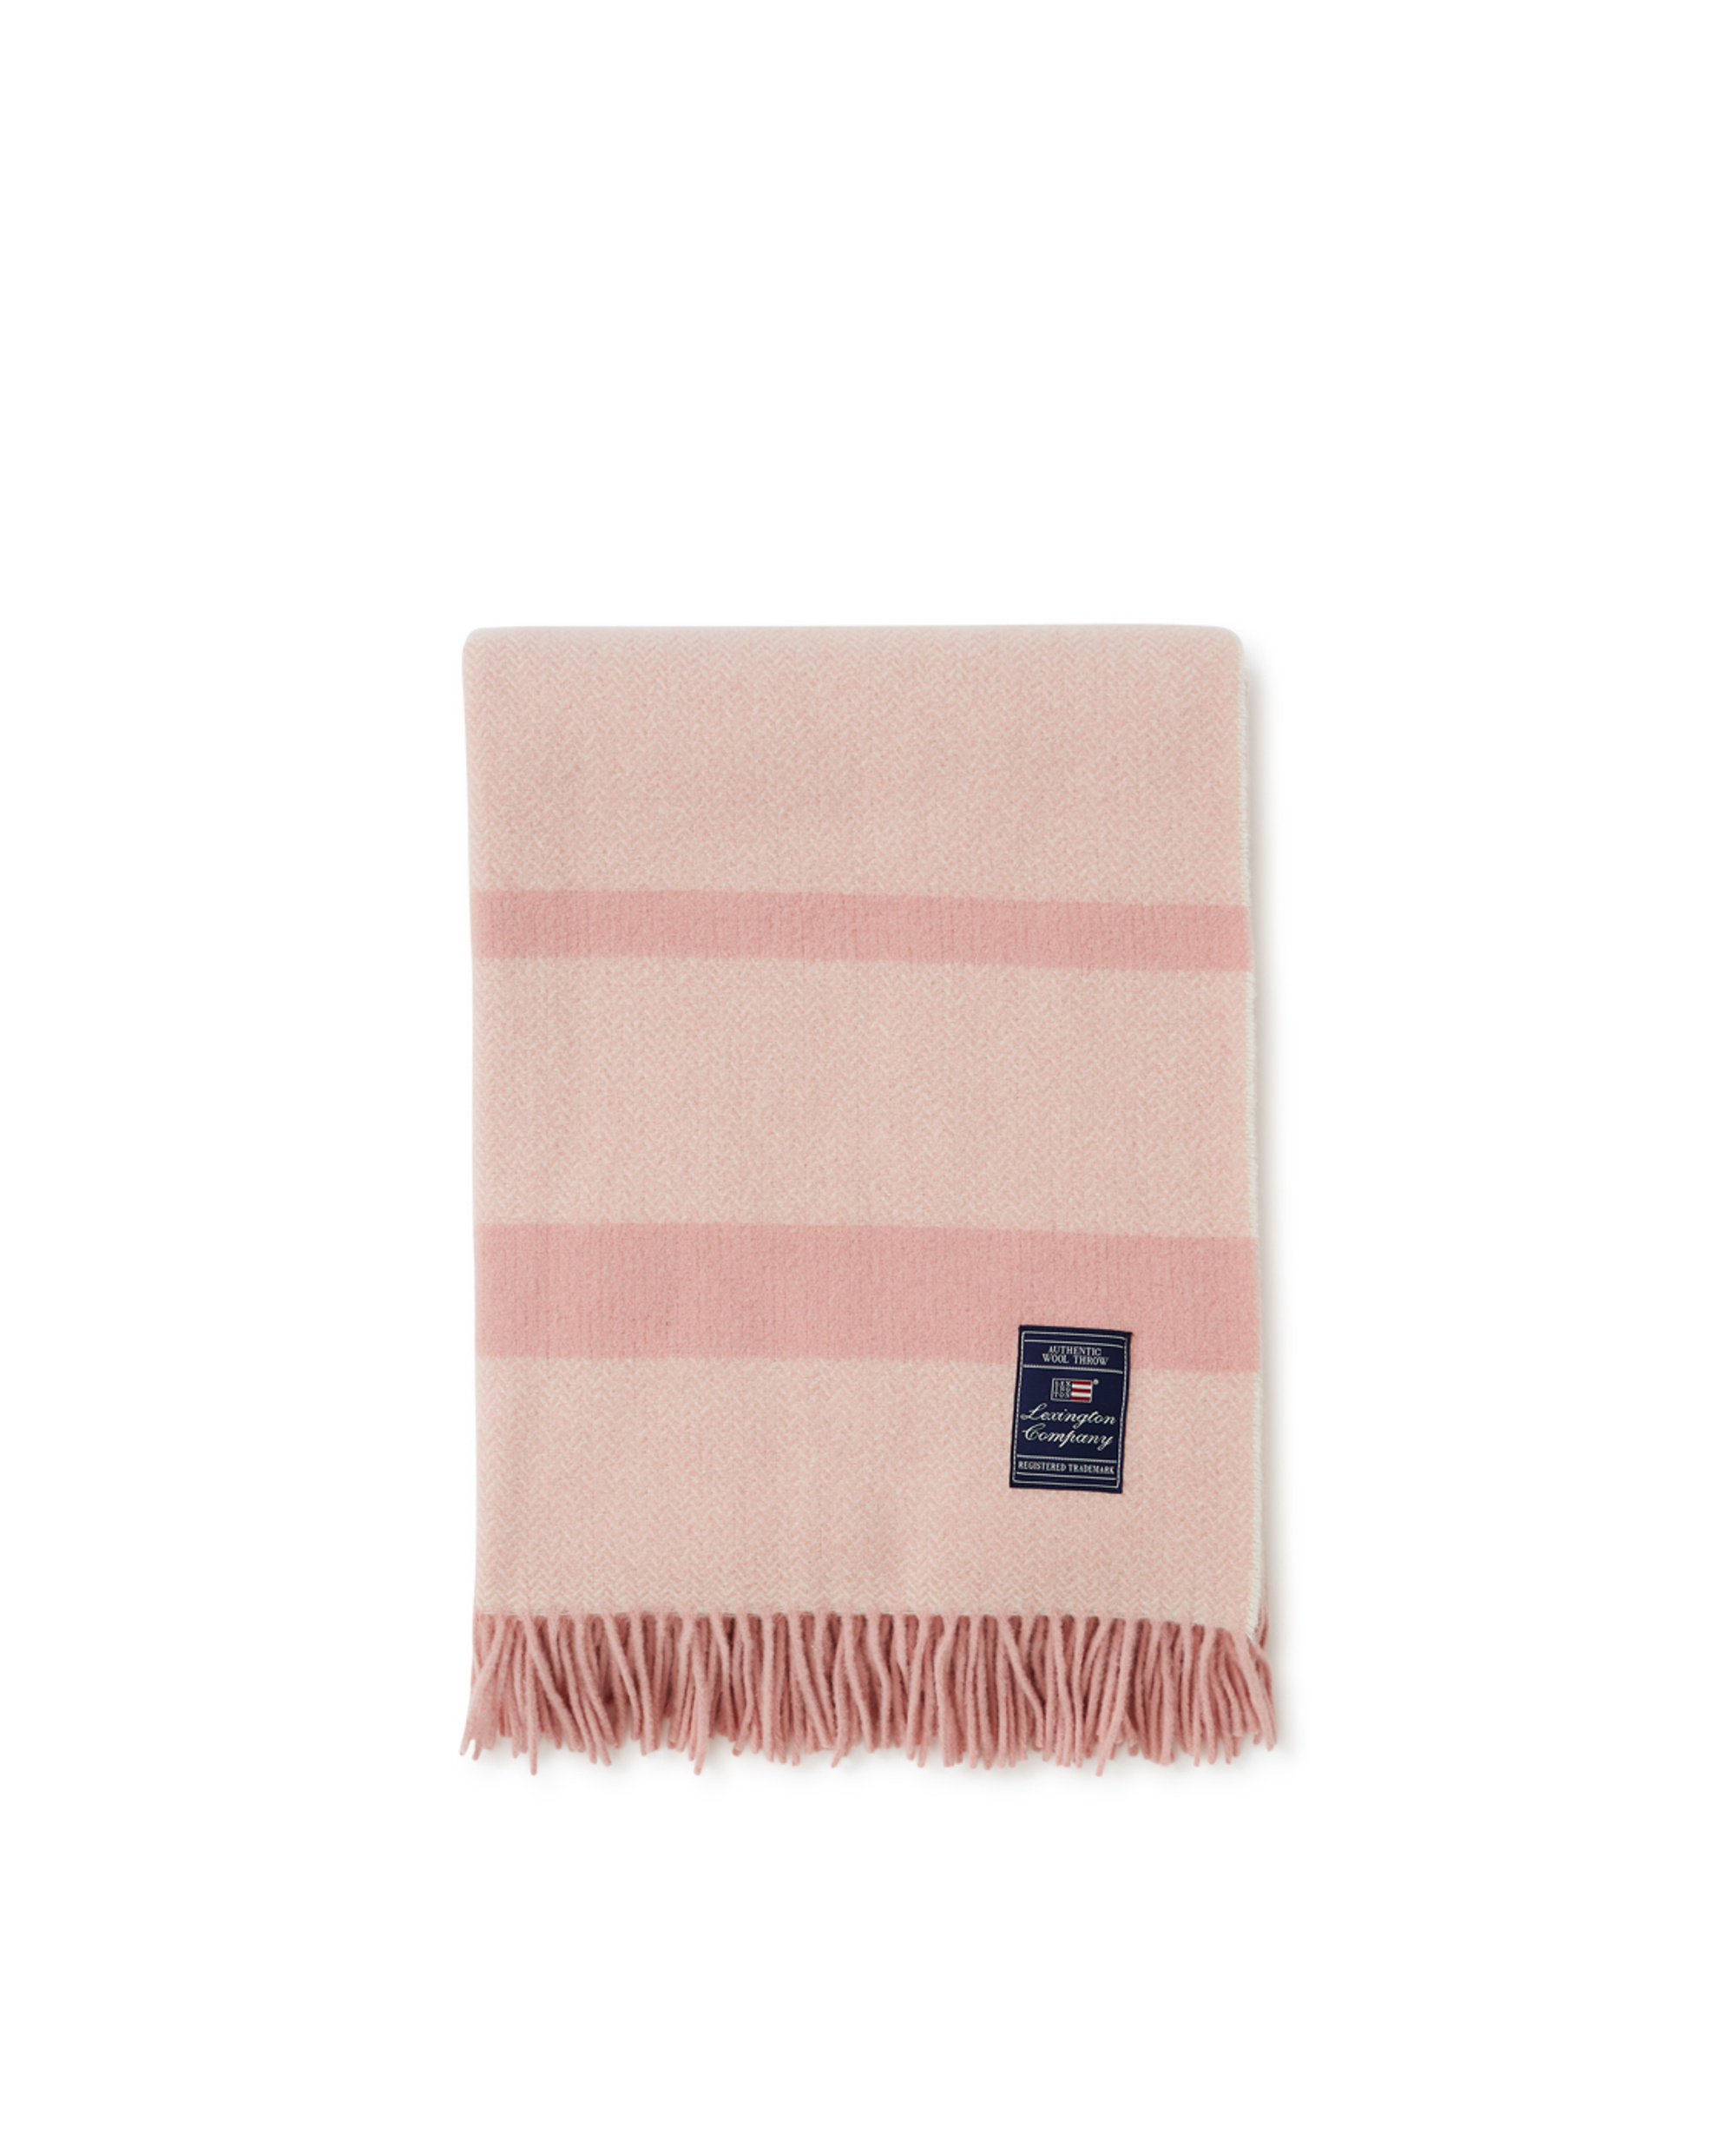 Herringbone Recycled Wool Throw, Pink